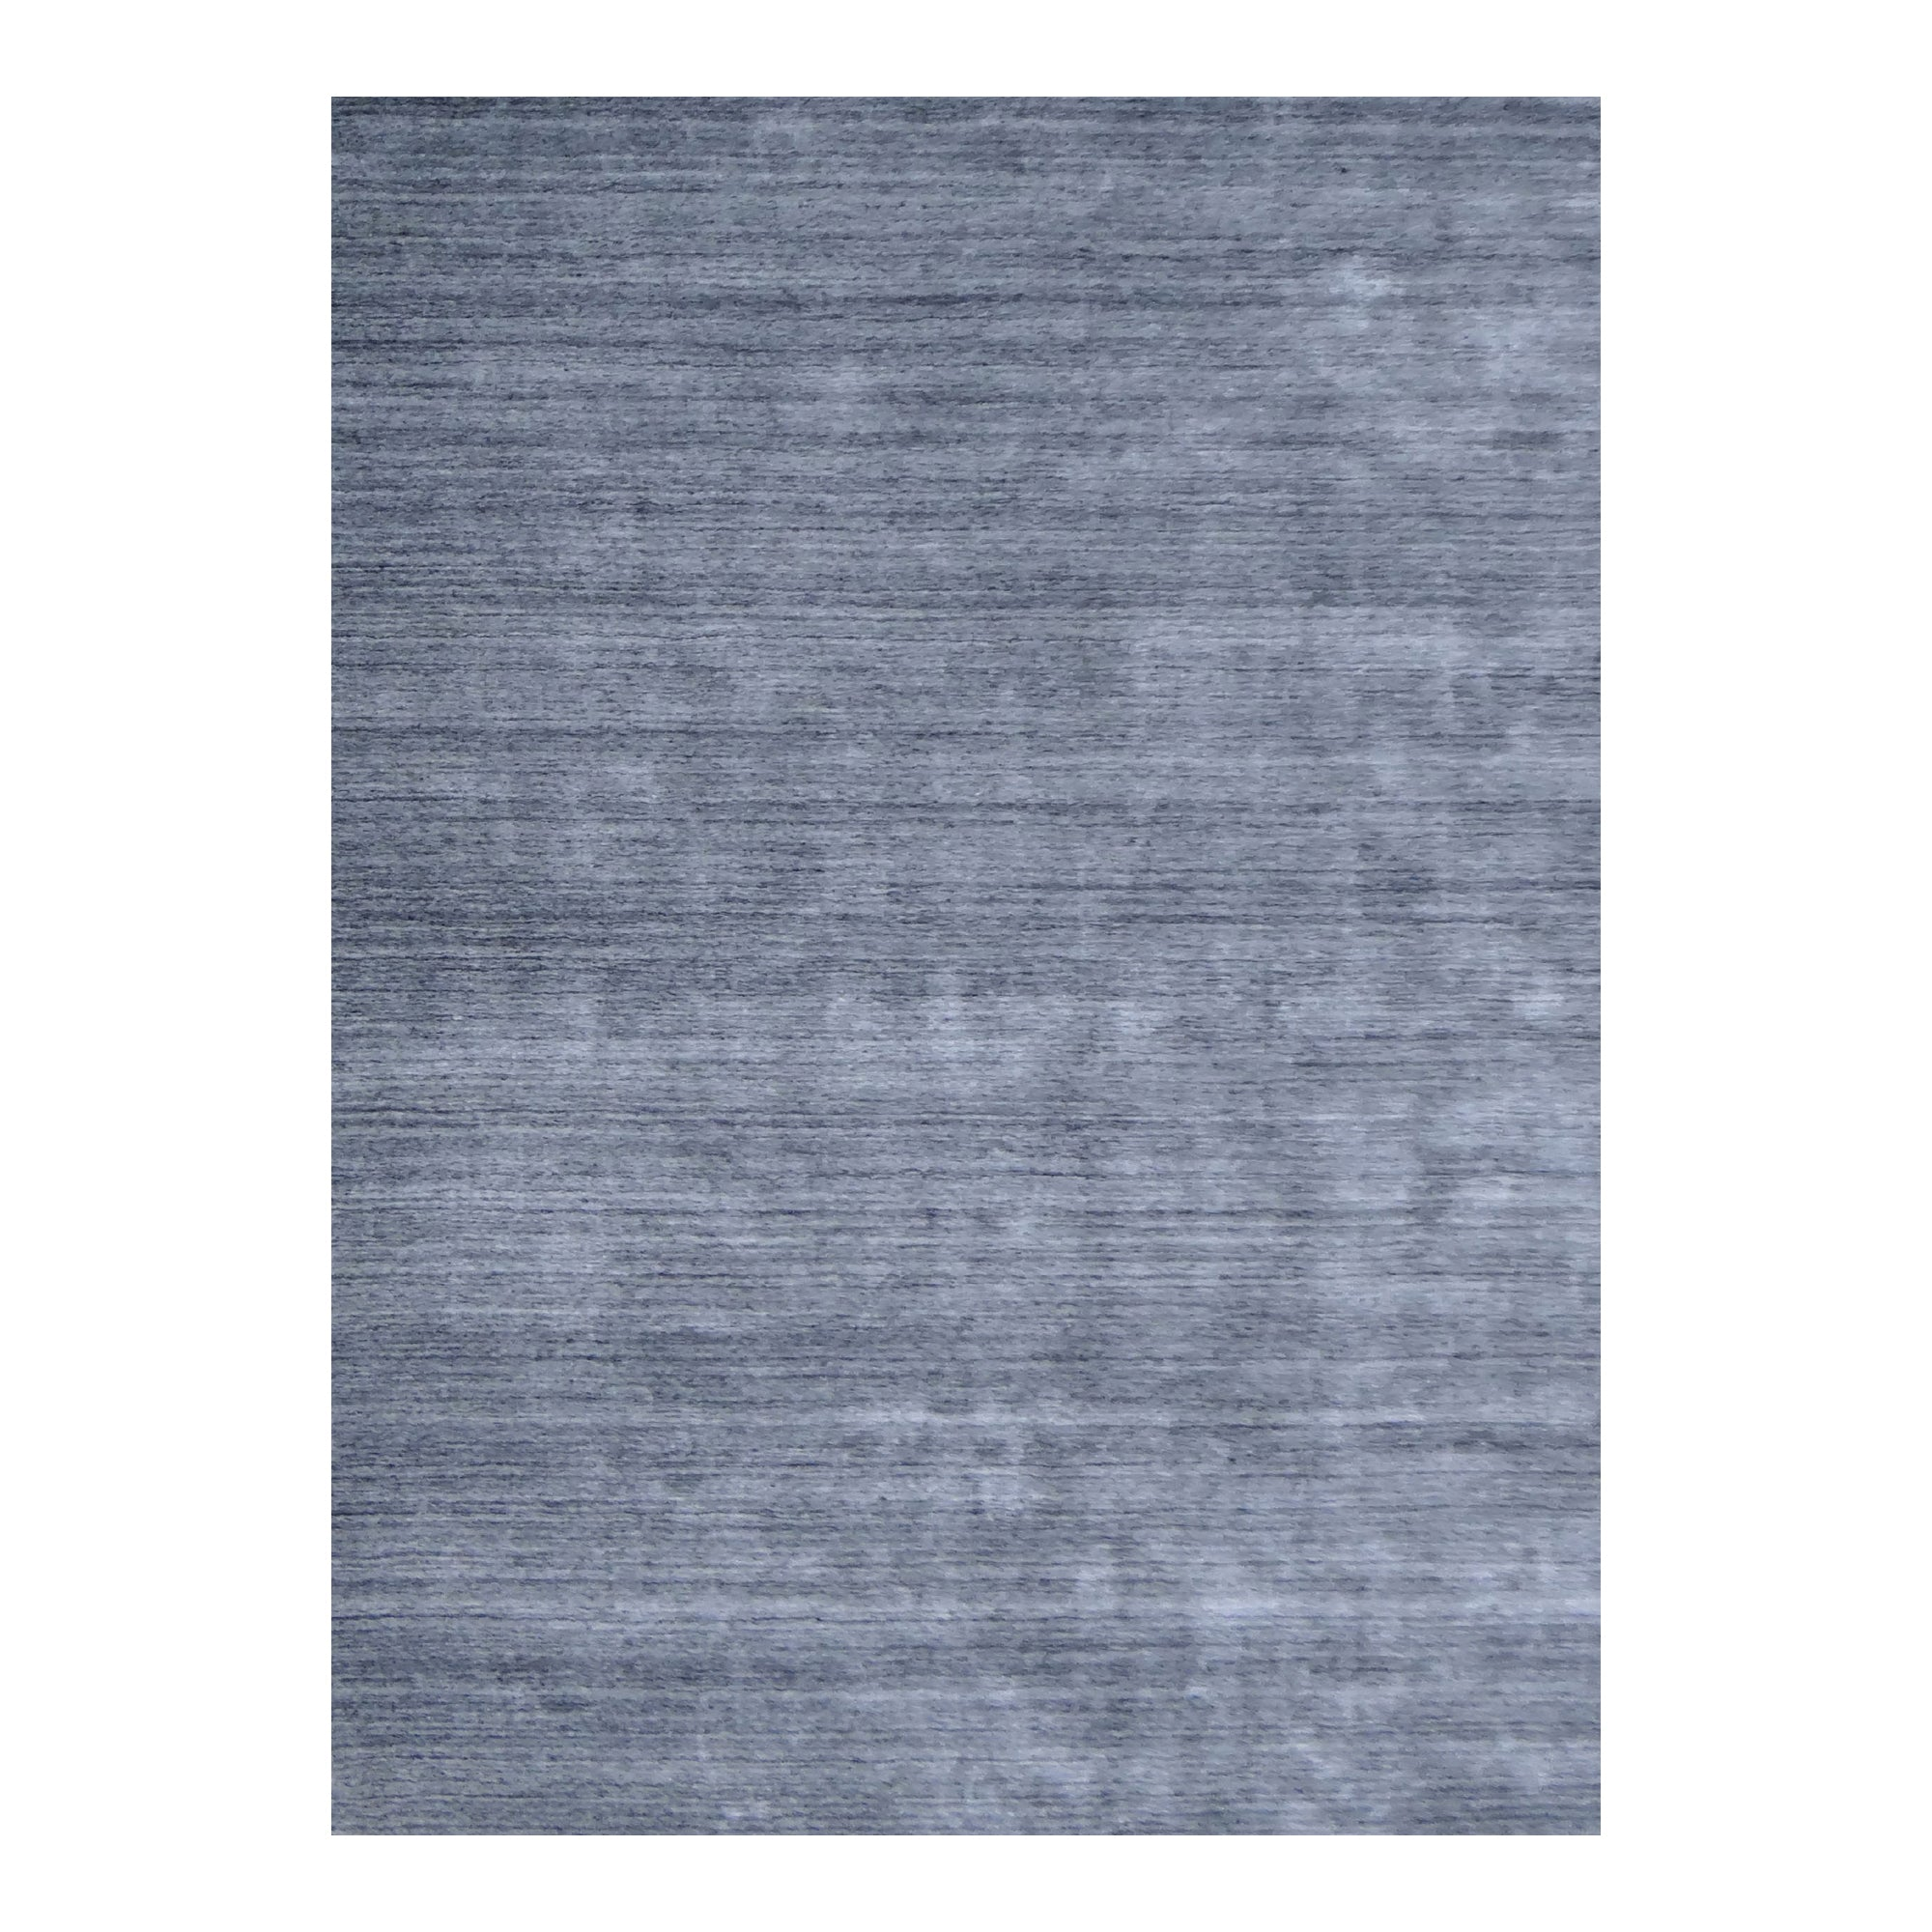 CAYENNE RUG 5X8, Grey - Tops-Dress